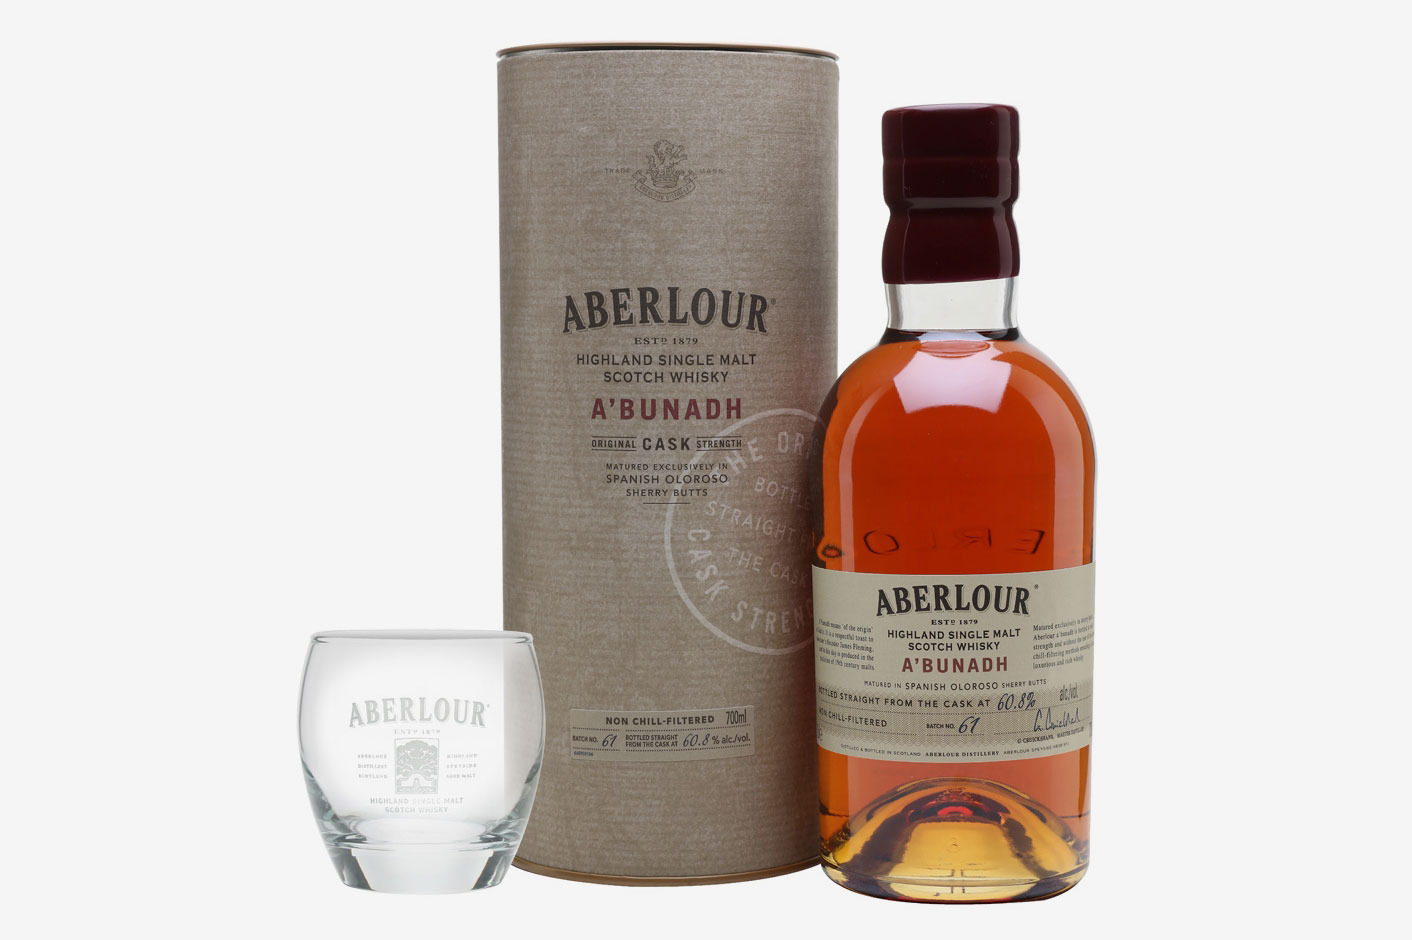 Aberlour A'Bunadh Speyside Single Malt Scotch Whisky